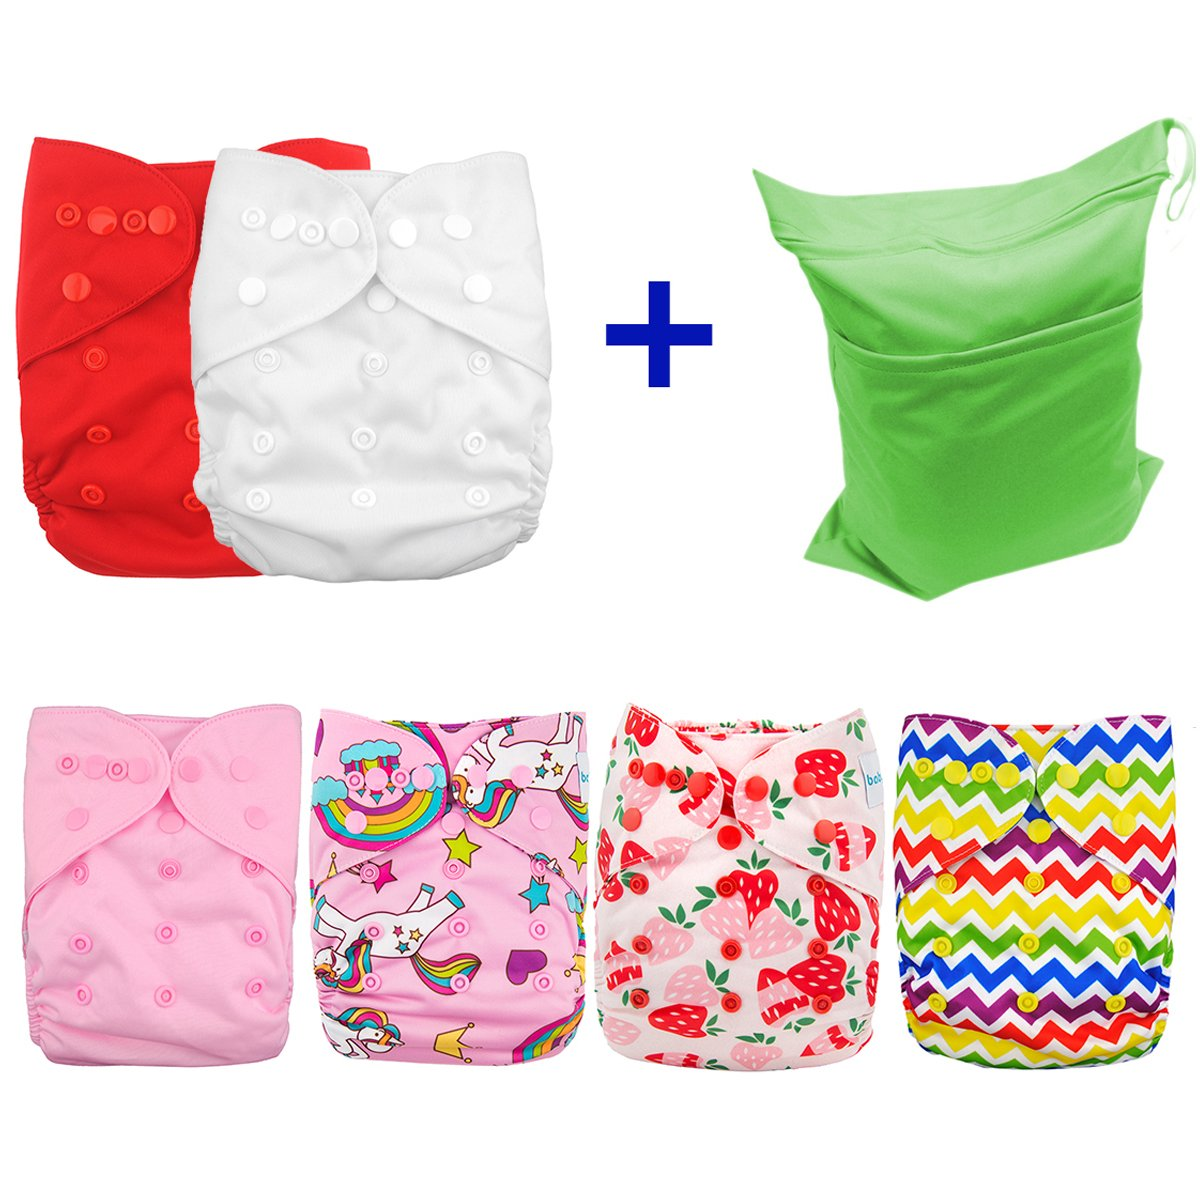 Adjustable Fabric Book Cover ~ Amazon.com : babygoal cloth diaper covers for girls baby adjustable